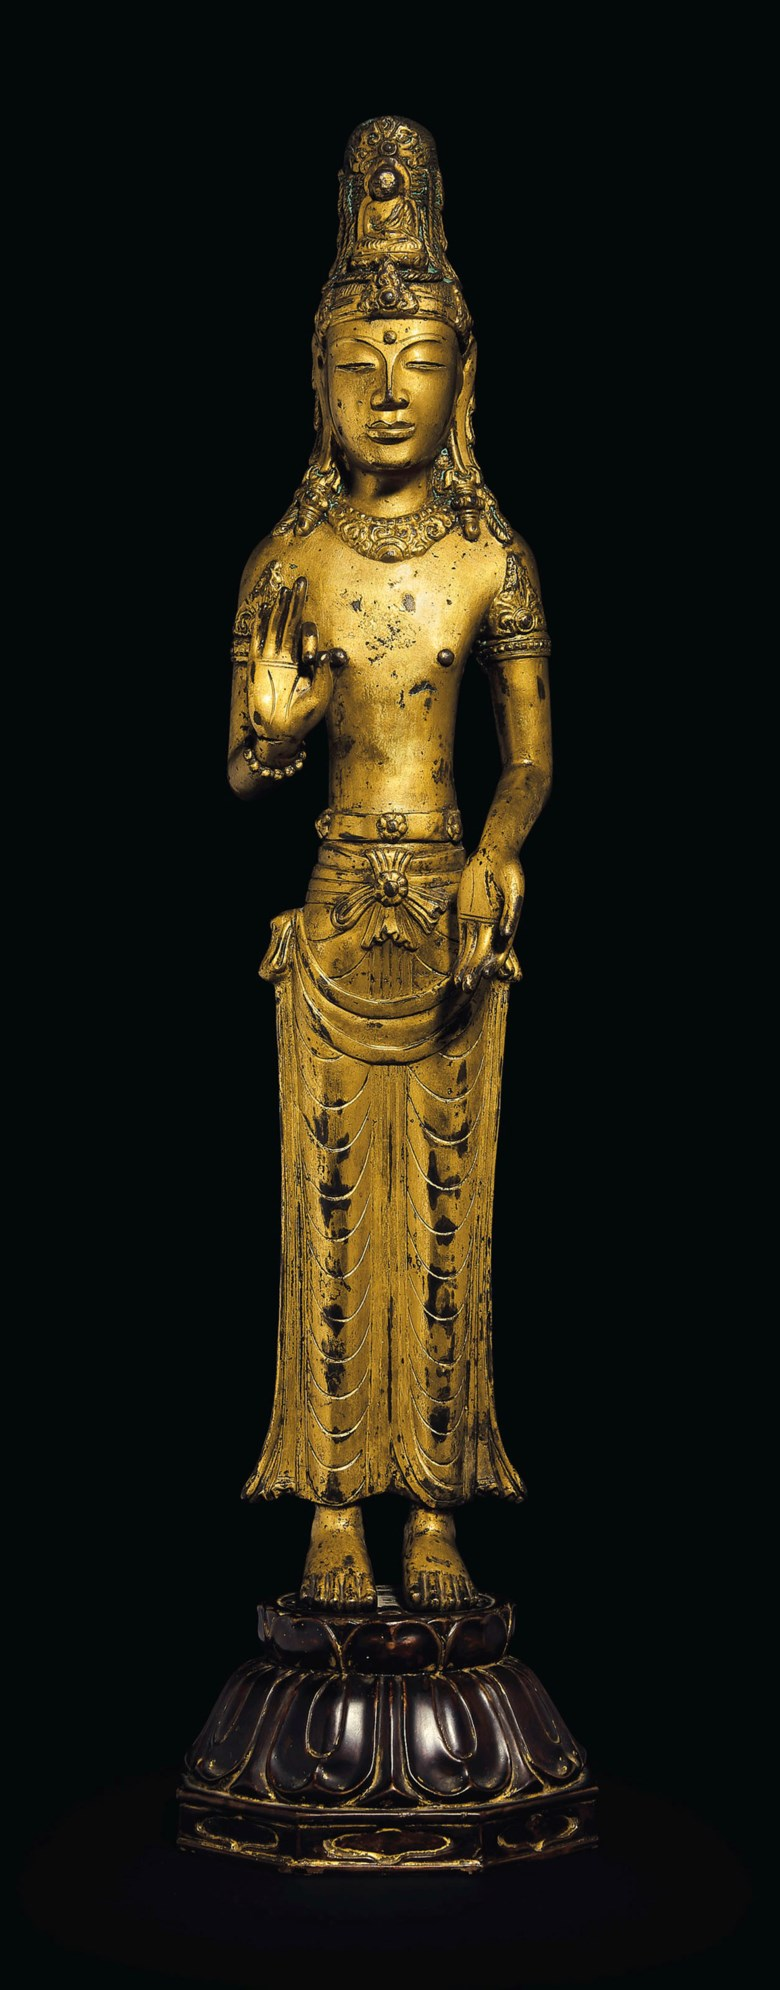 A rare gilt-bronze standing figure of an Acuoye Guanyin, China, Yunnan, Dali kingdom, 12th century. 18  in (45.7  cm) high. Estimate $2,000,000-3,000,000. Offered in Lacquer, Jade, Bronze, Ink The Irving Collection Evening Sale on 20 March 2019 at Christie's in New York